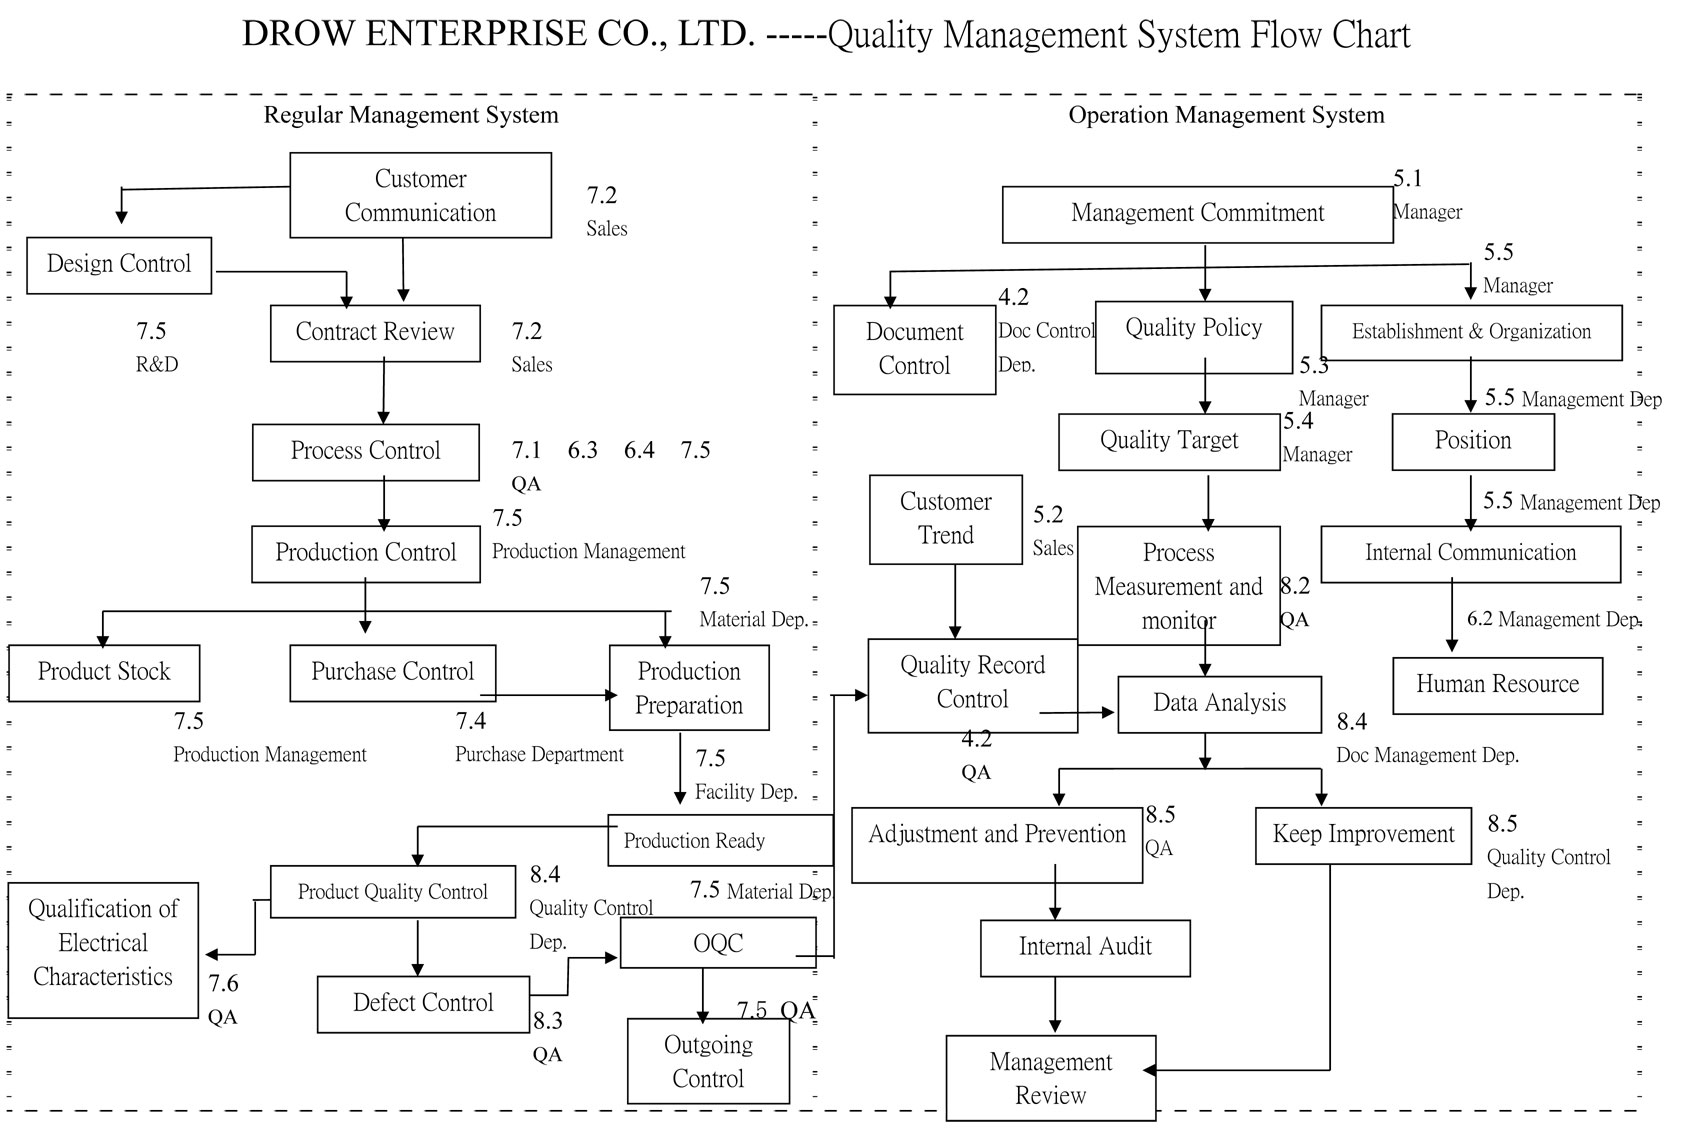 Quality Management | Drow Enterprise Co., Ltd.